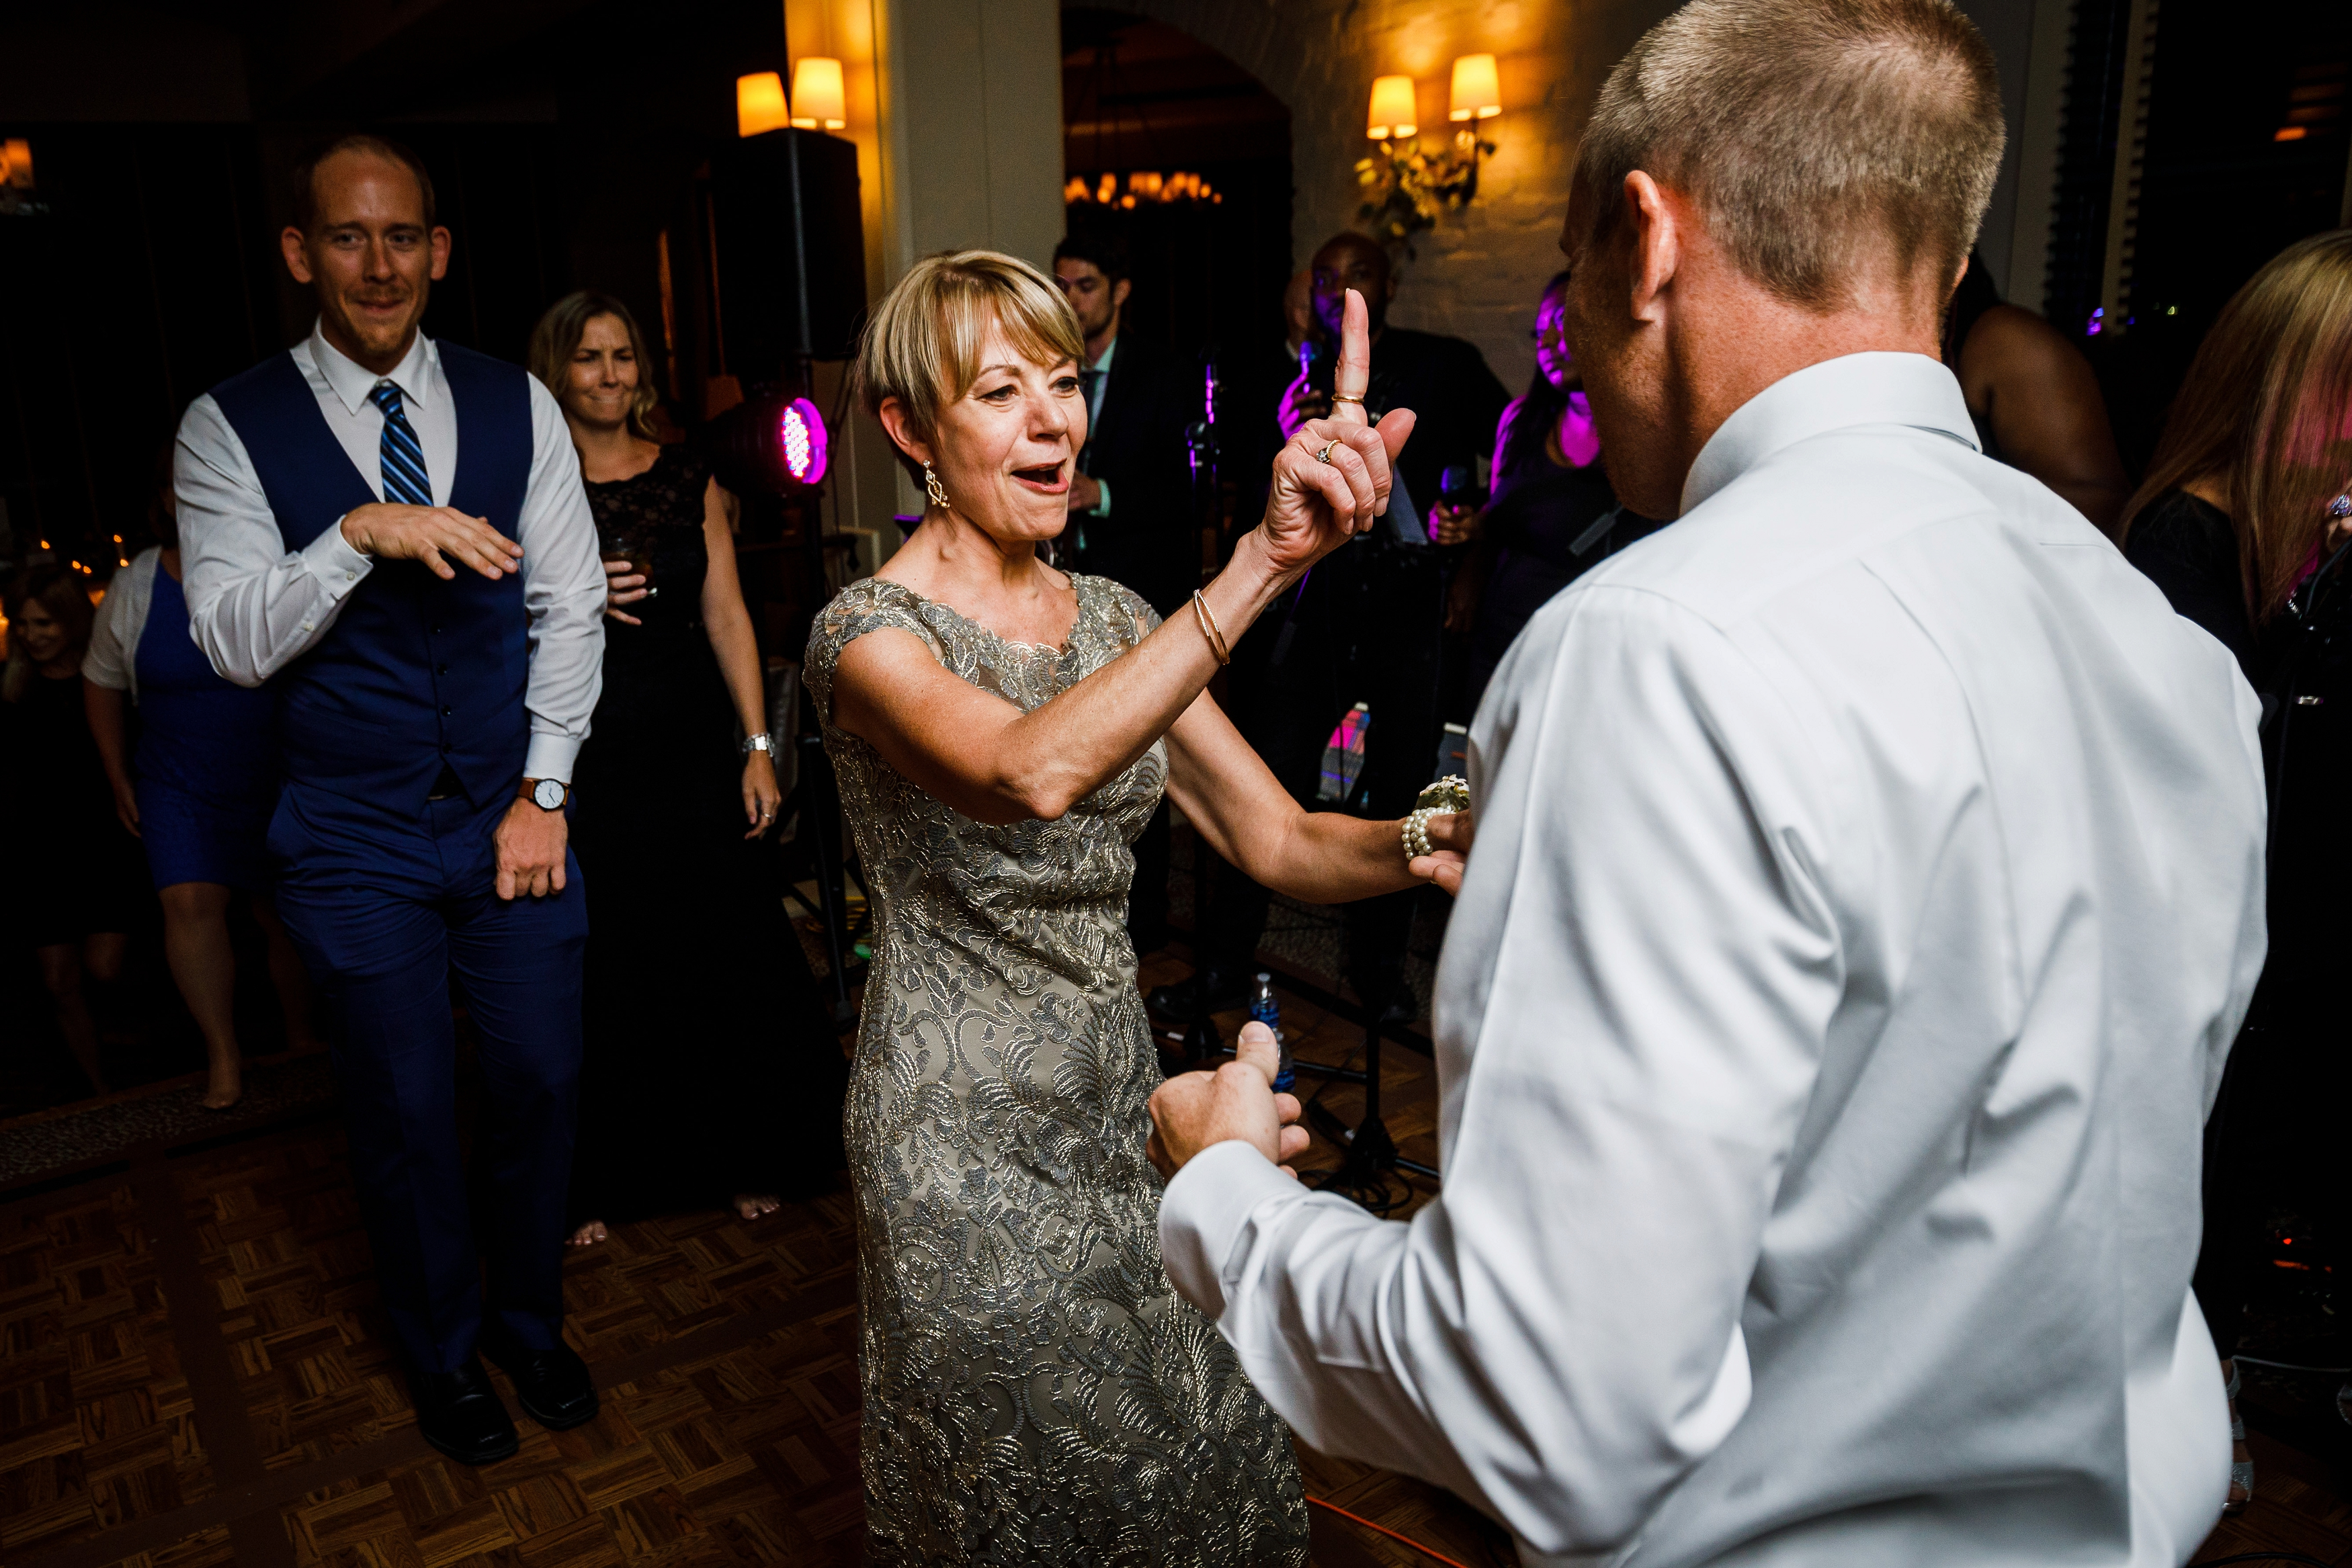 Wedding dancing at Park Hyatt in Beaver Creek